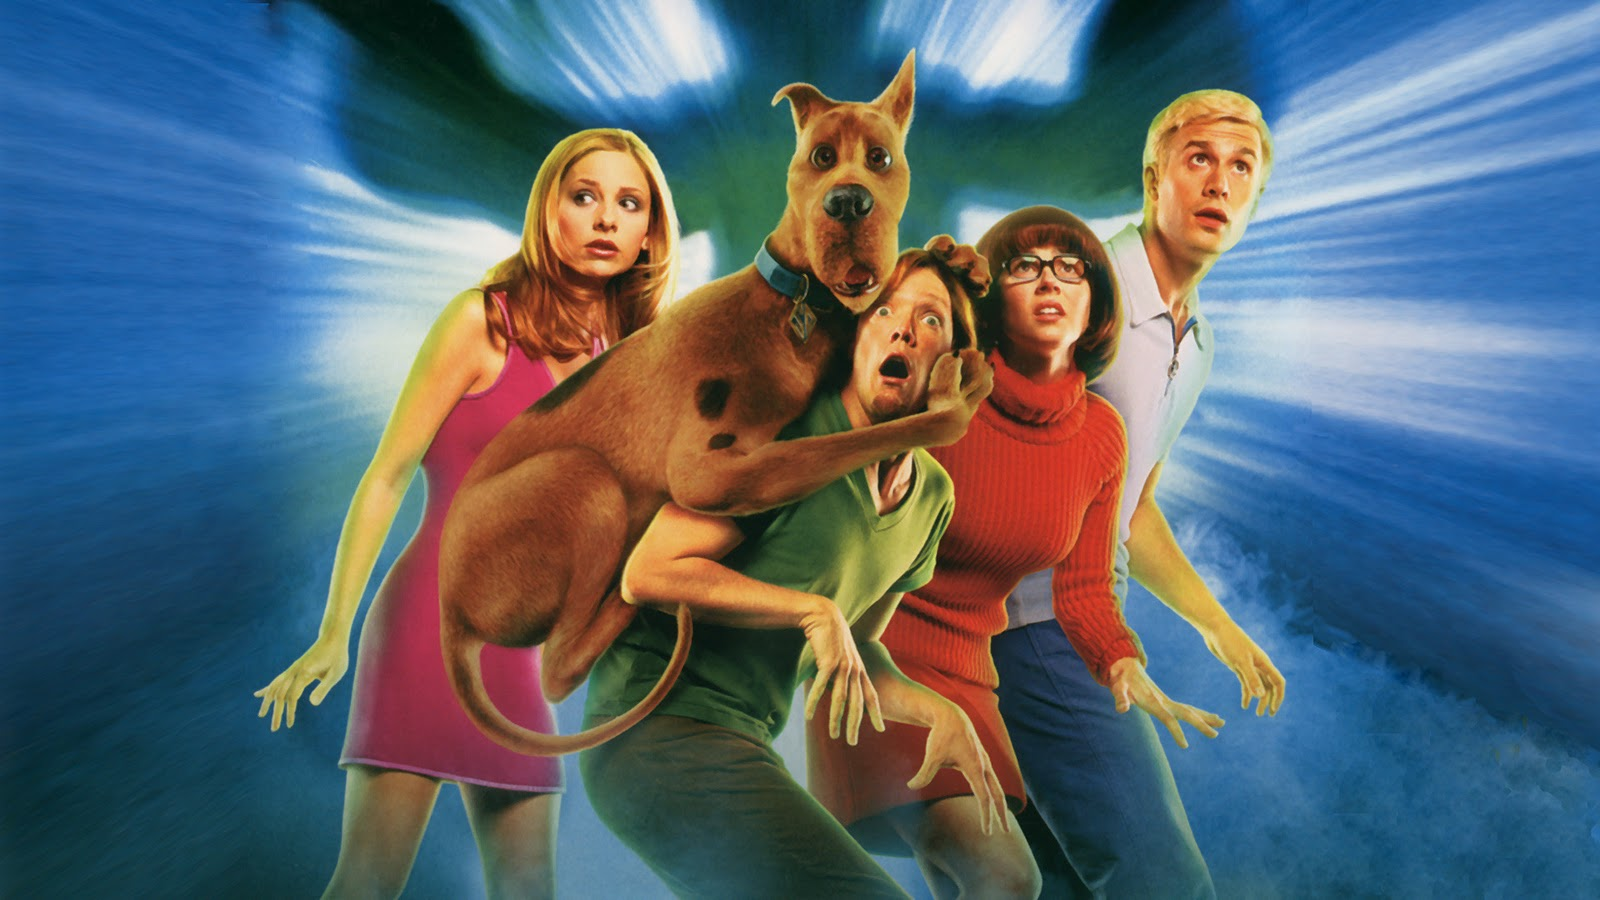 Scooby Doo Pictures Cartoons Wallpapers Videos Scooby